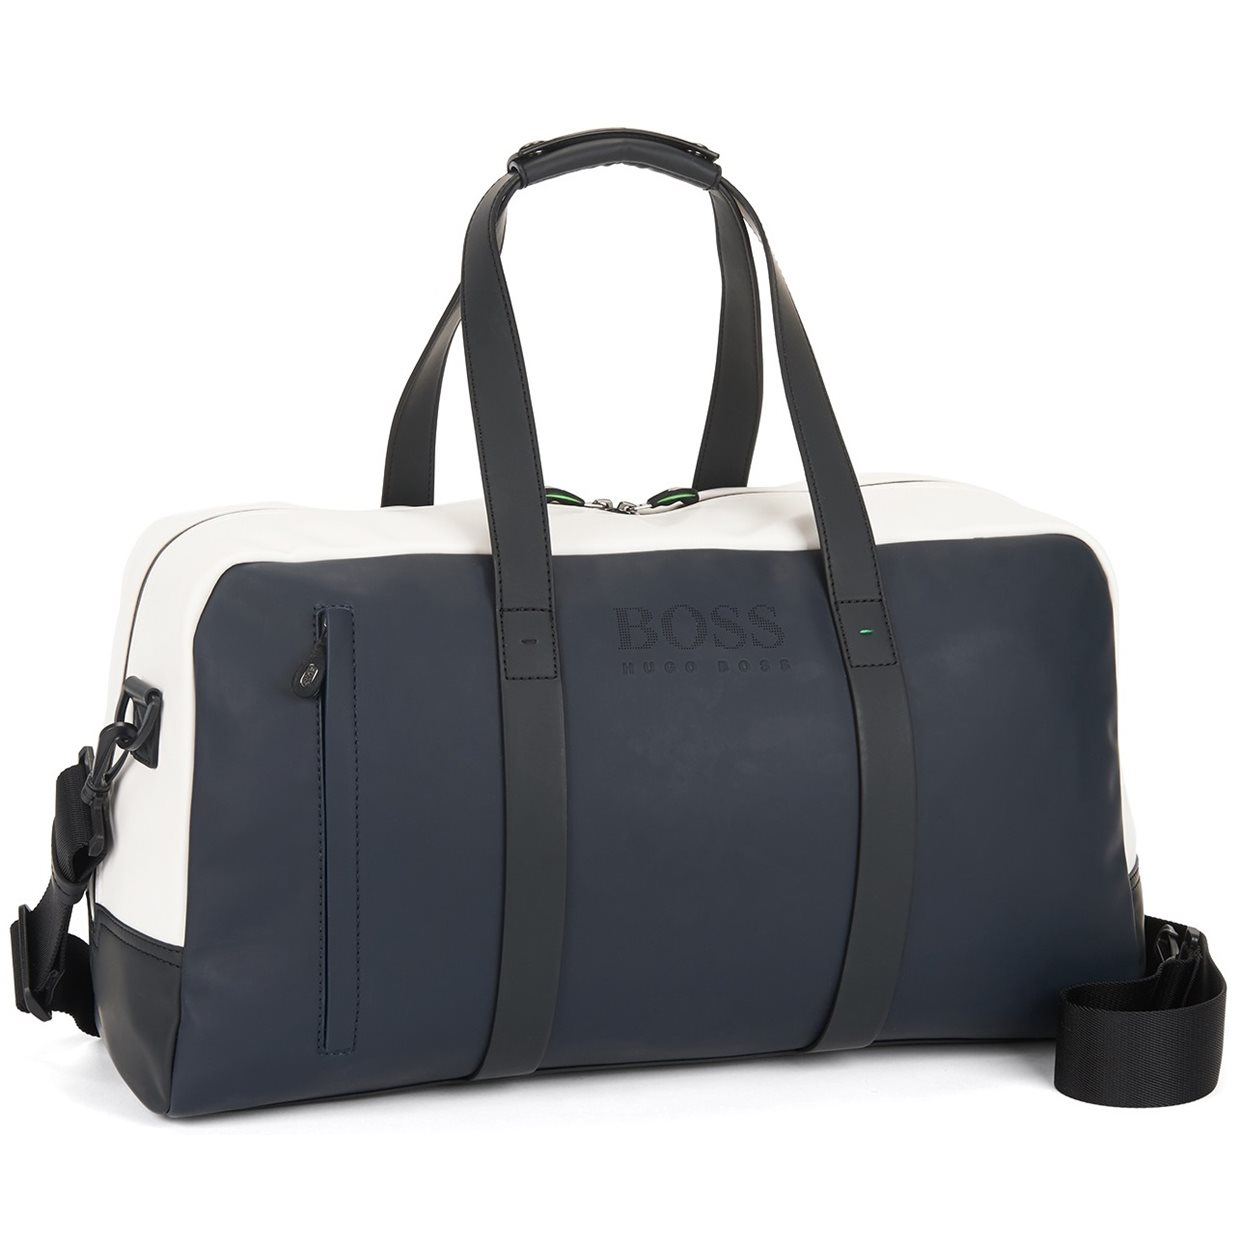 Hugo Boss Hyper Color Blocking Holdall Duffle Bag Luggage In Navy White